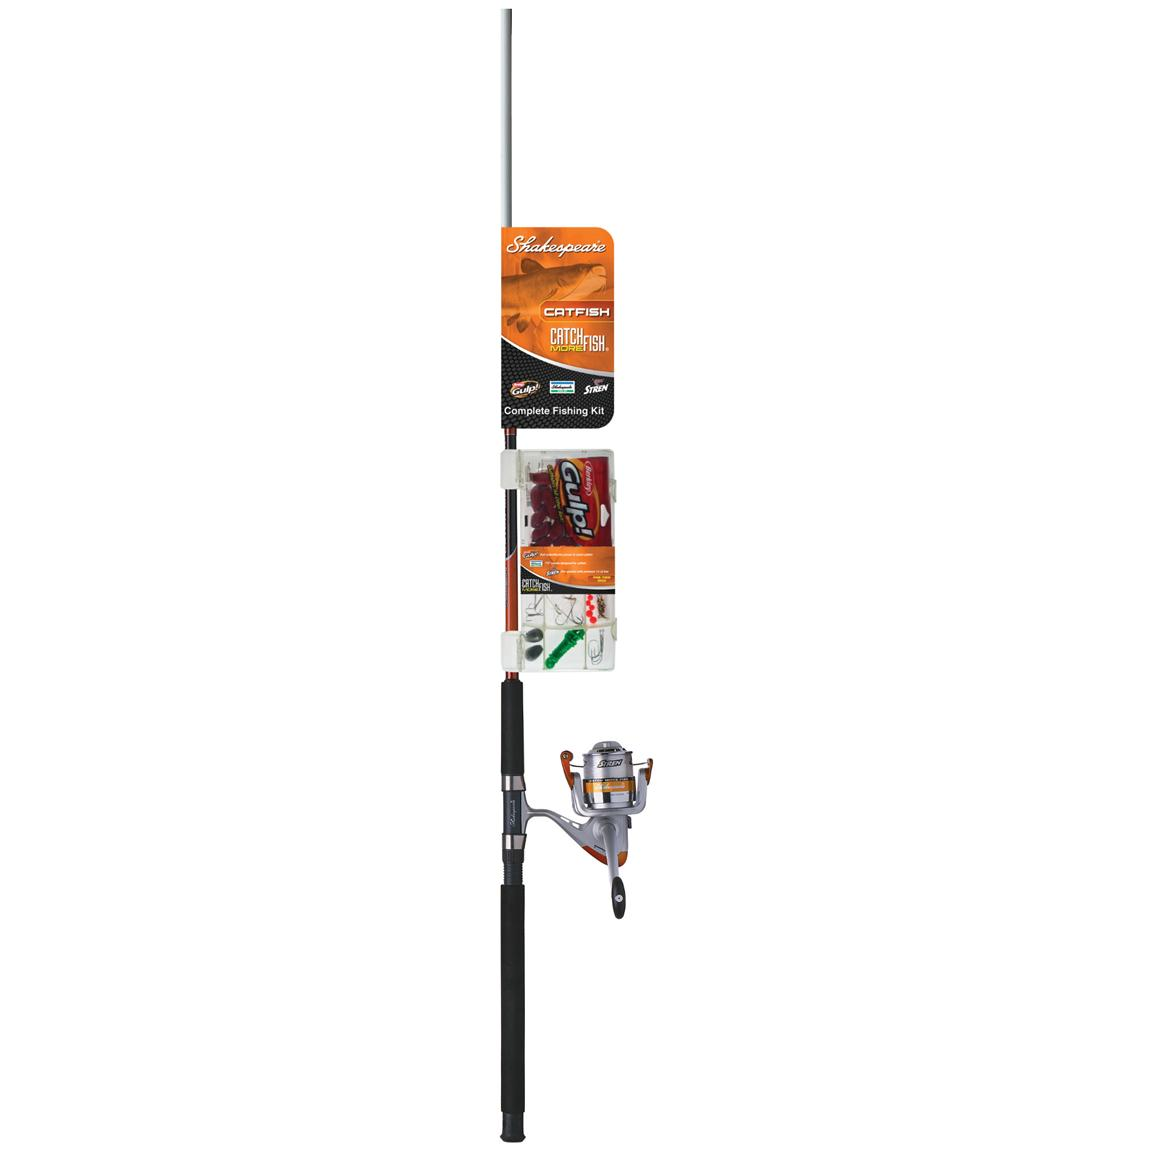 Shakespeare® Catch More Fish Catfish Rod & Reel Combo